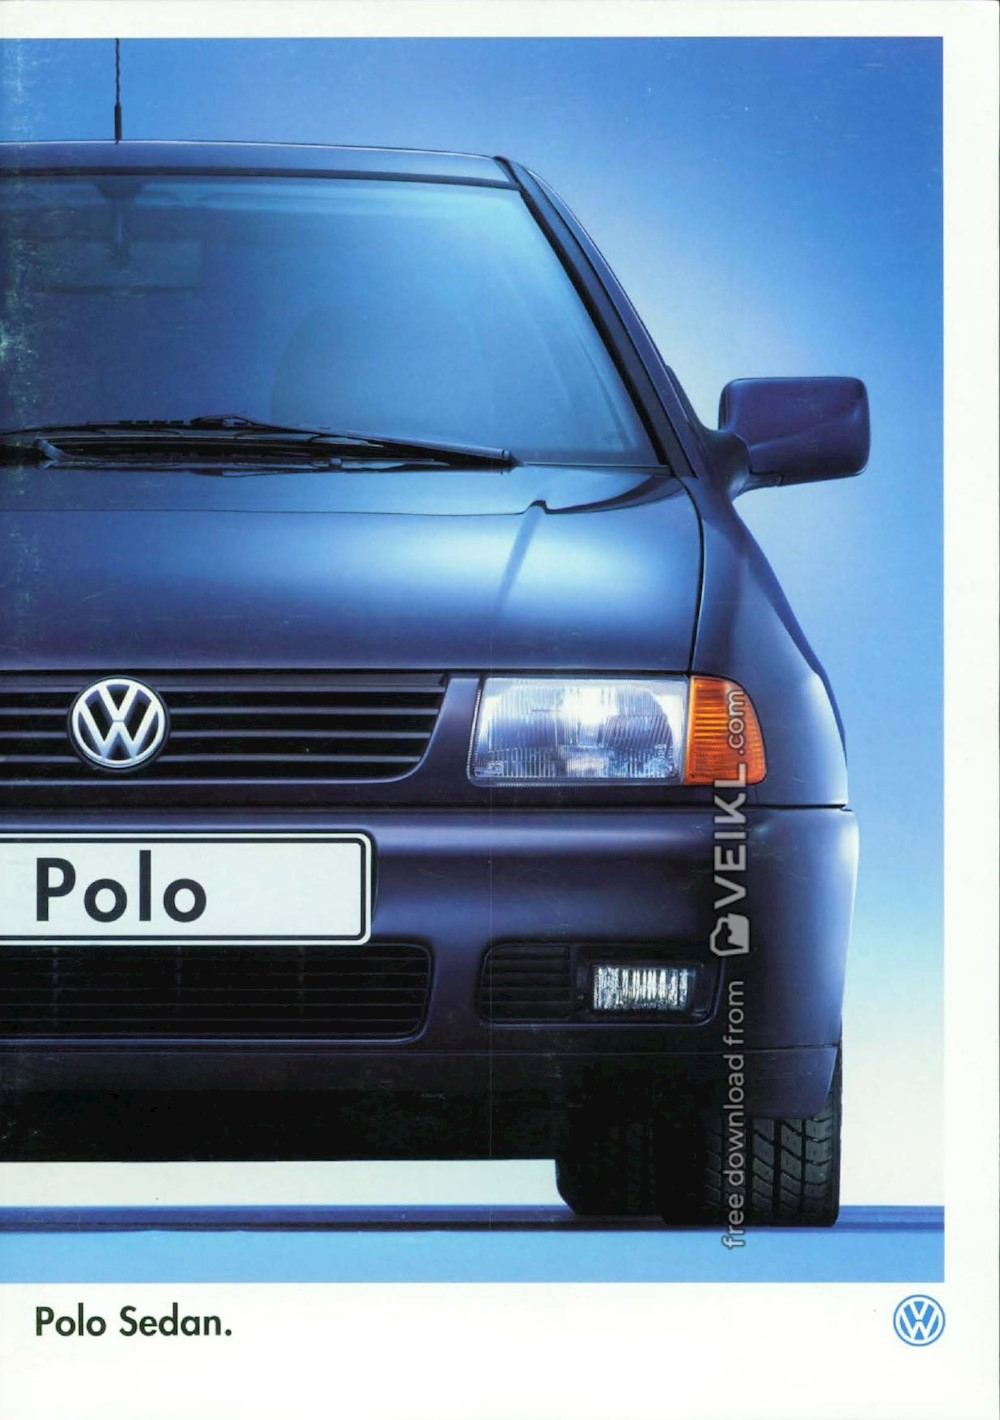 Volkswagen Polo Sedan Brochure 1998 Nl Veikl